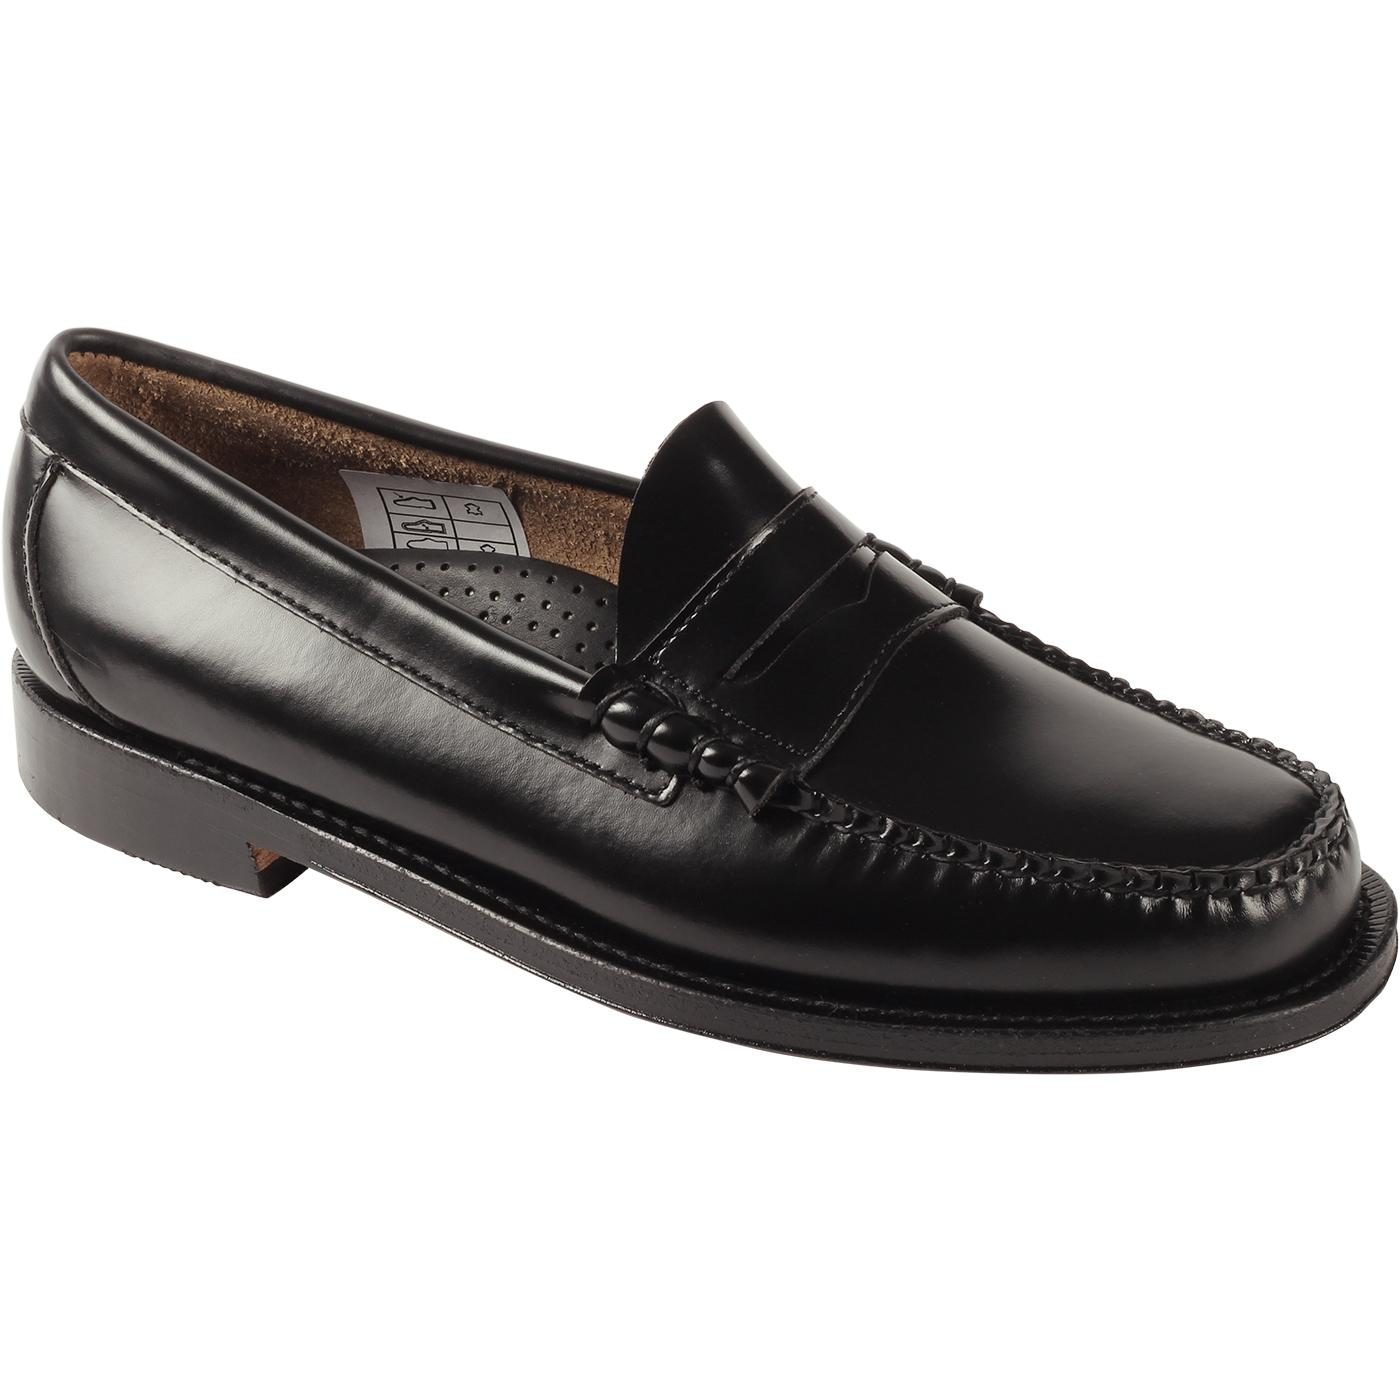 Heritage Larson BASS WEEJUNS Penny Loafers (Black)